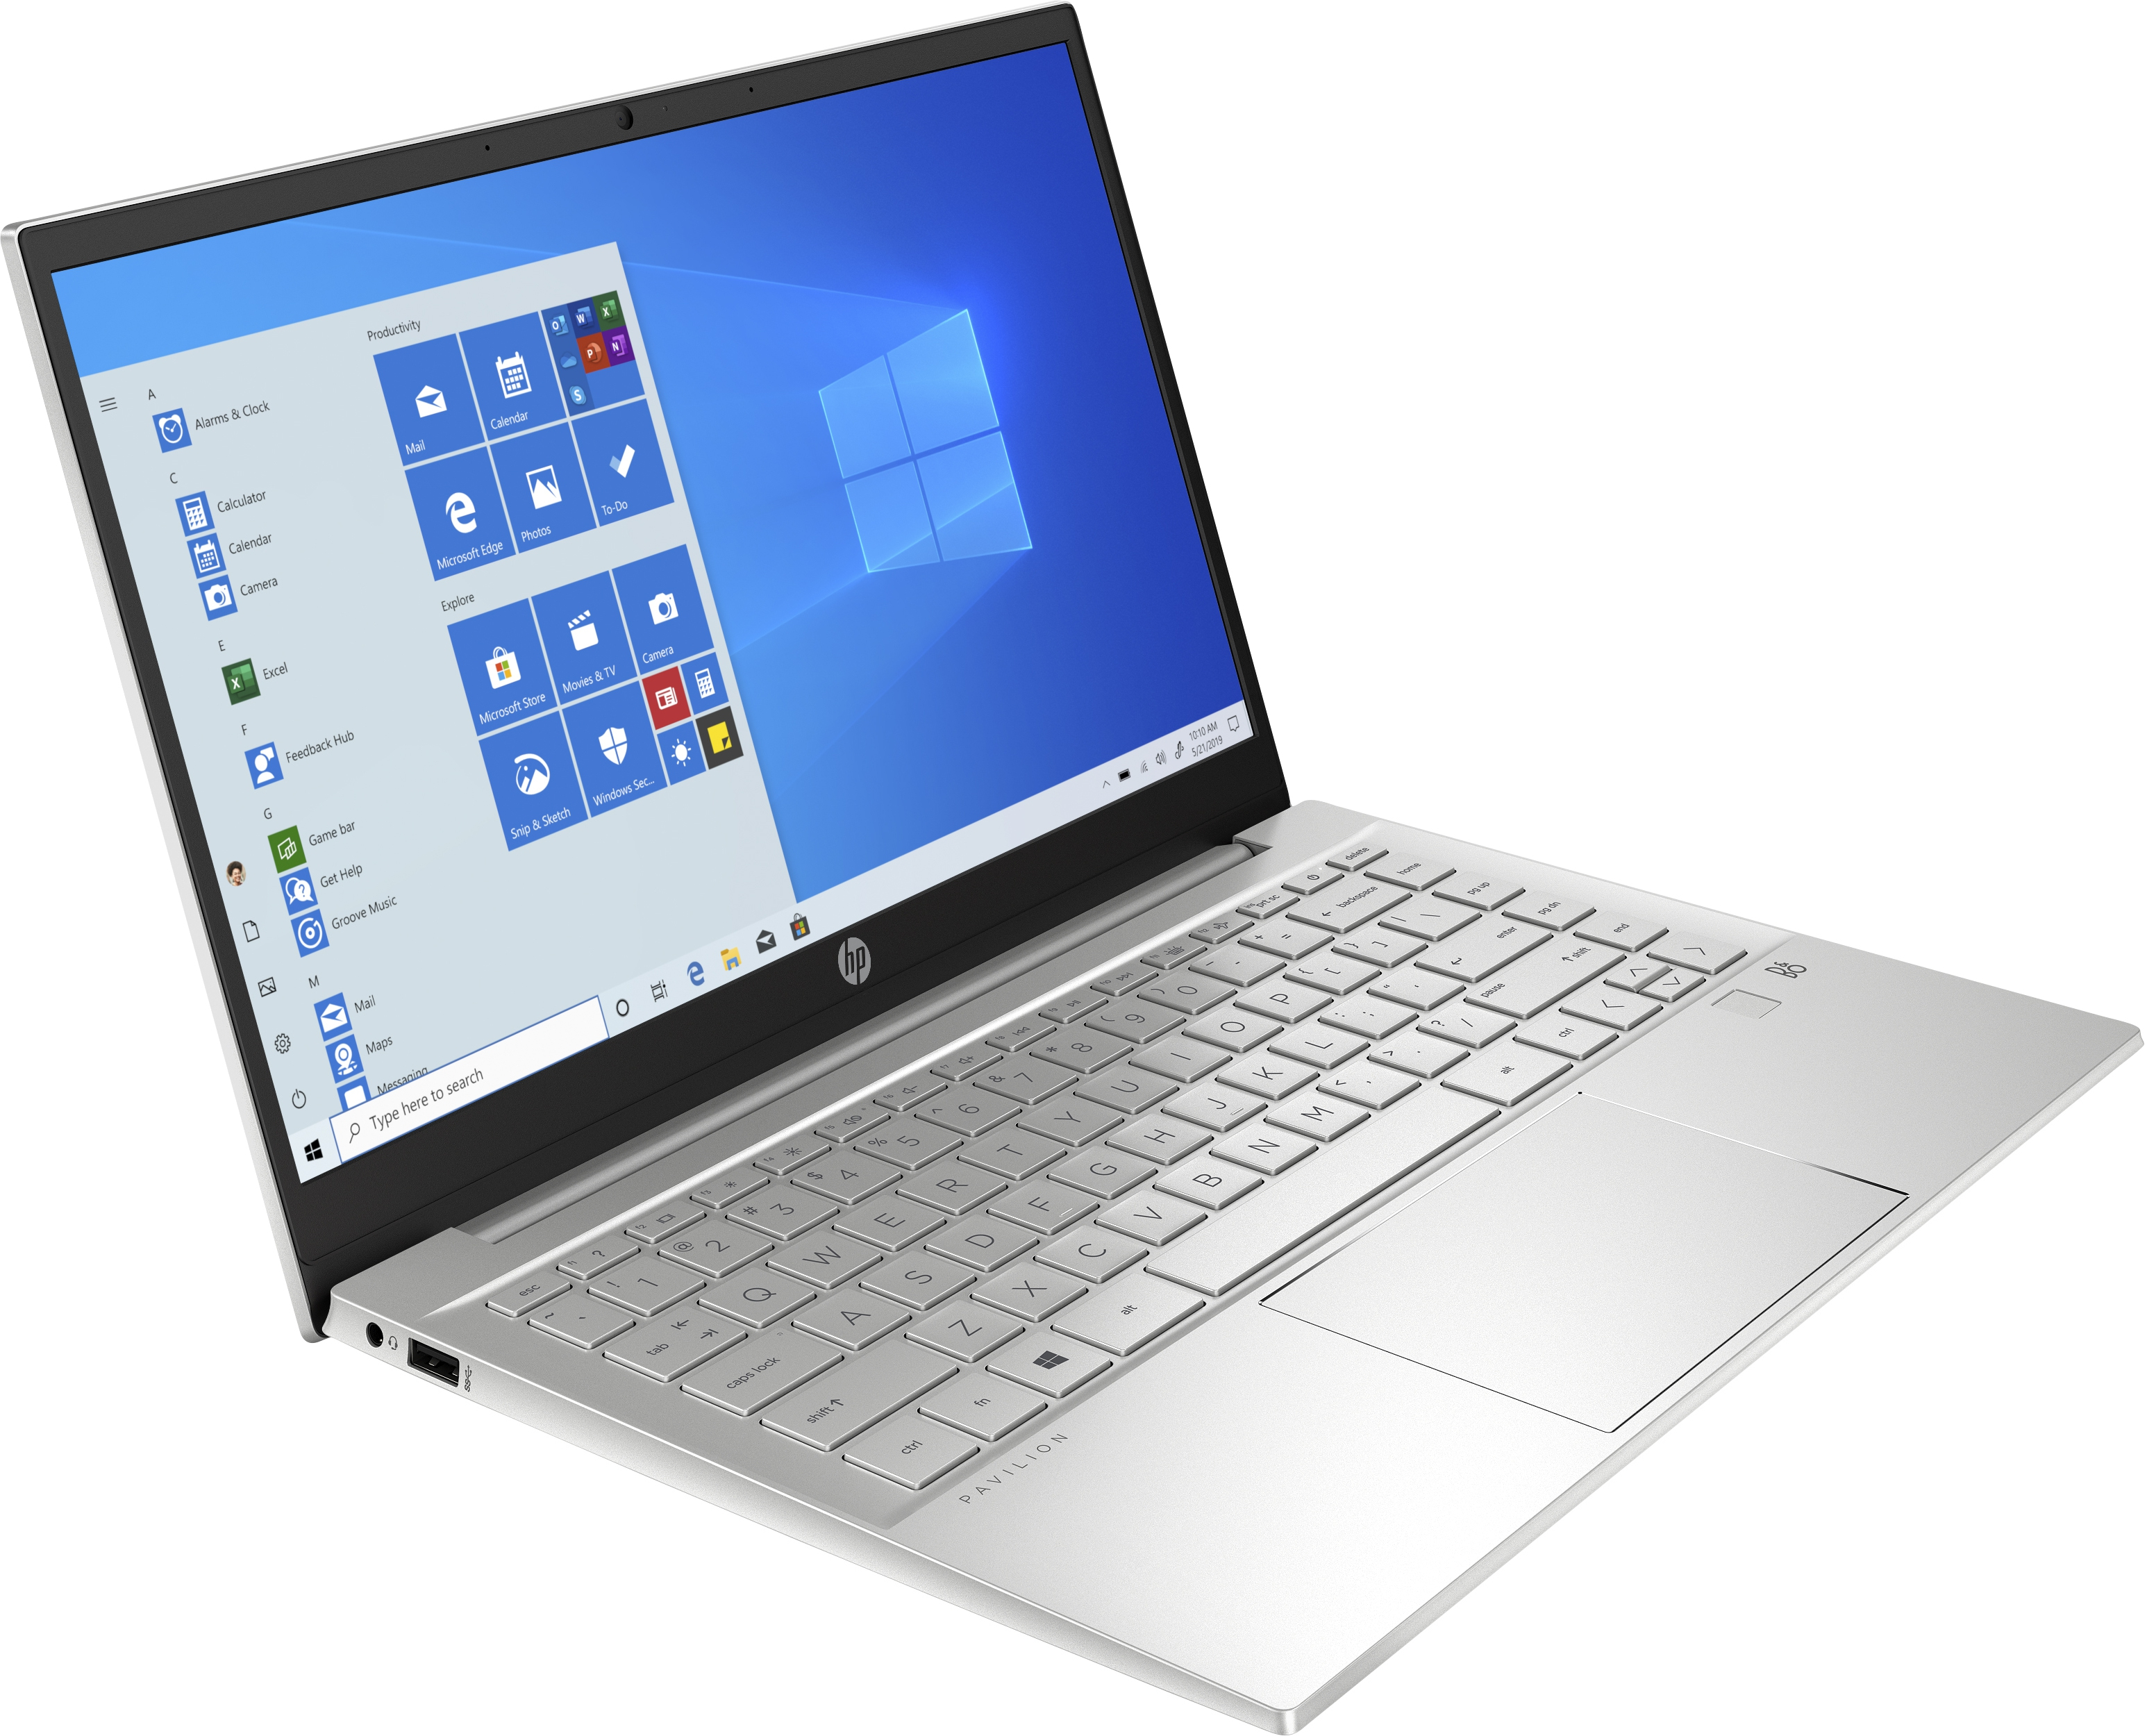 """#HP Pavilion 13-bb0000nw i5-1135G7 13,3""""FHD AG 250nit IPS 8GB_3200MHz SSD512 IrisXe WiFi6 BT5 B&O BLK ALU Win10 2Y Natural Silver"""